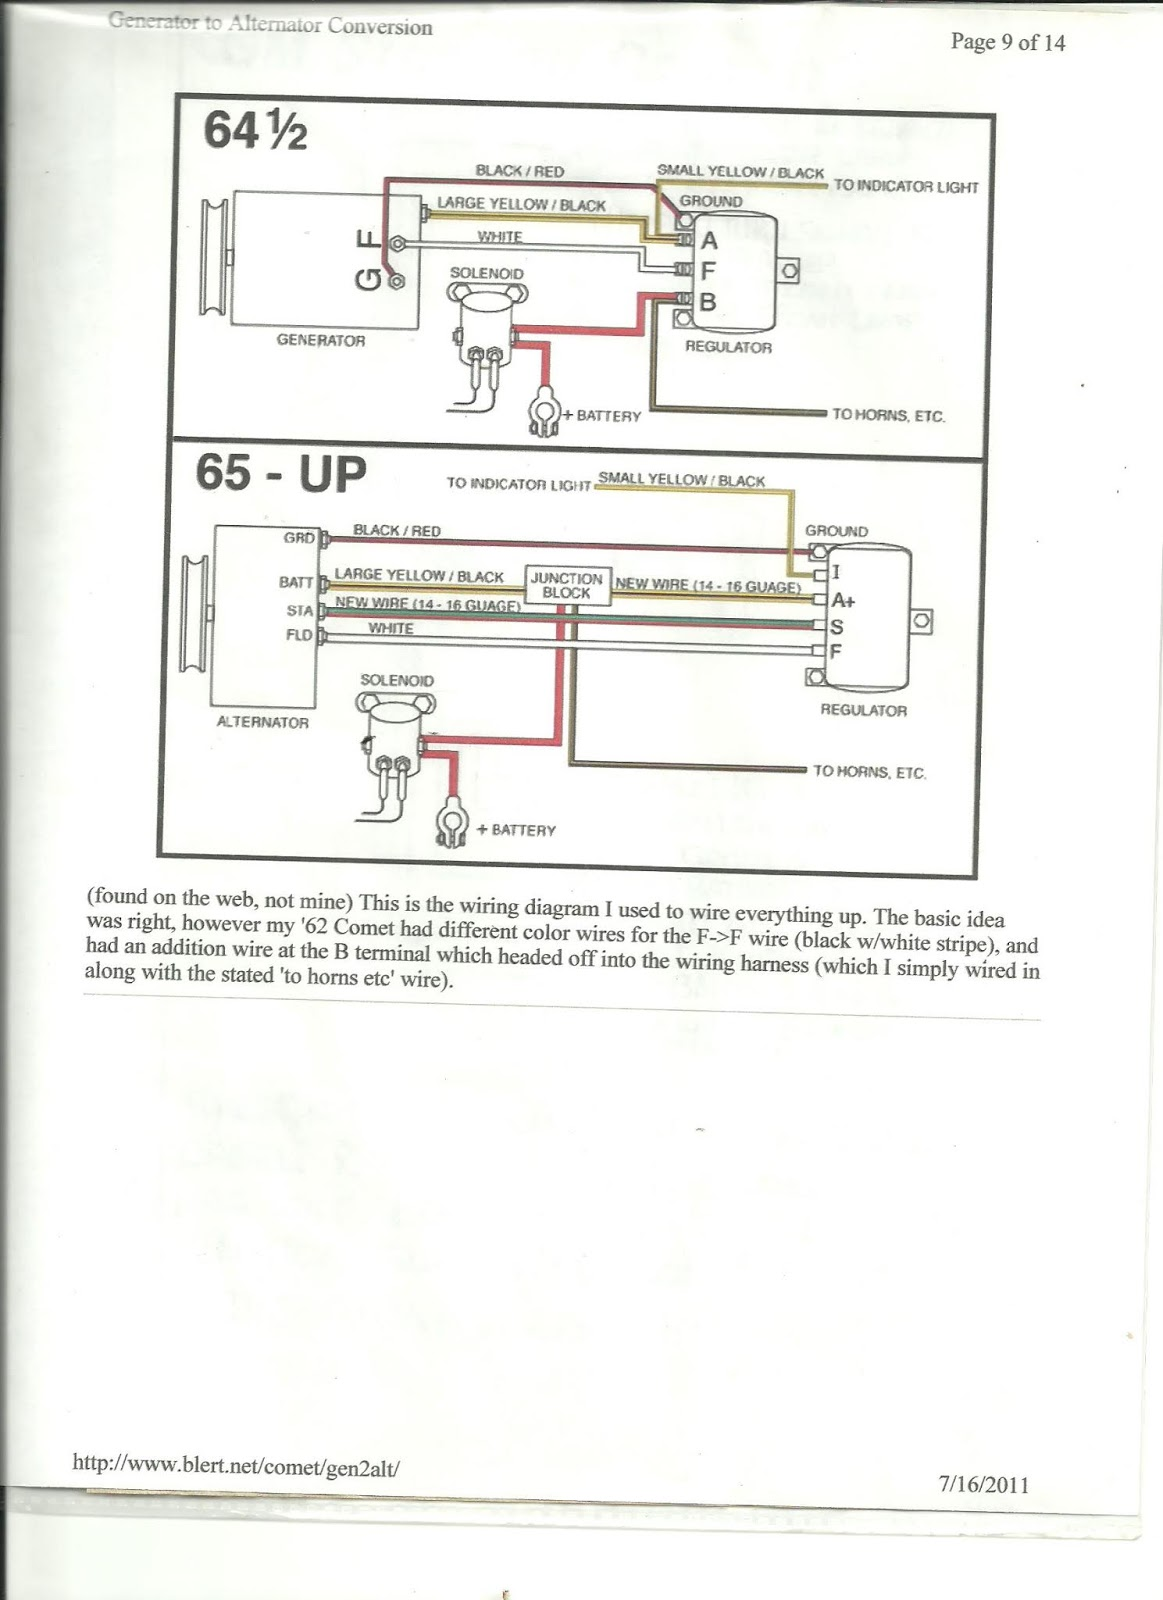 hight resolution of 62 ford generator wiring diagram explained wiring diagrams 1979 ford alternator wiring diagram ford generator wiring